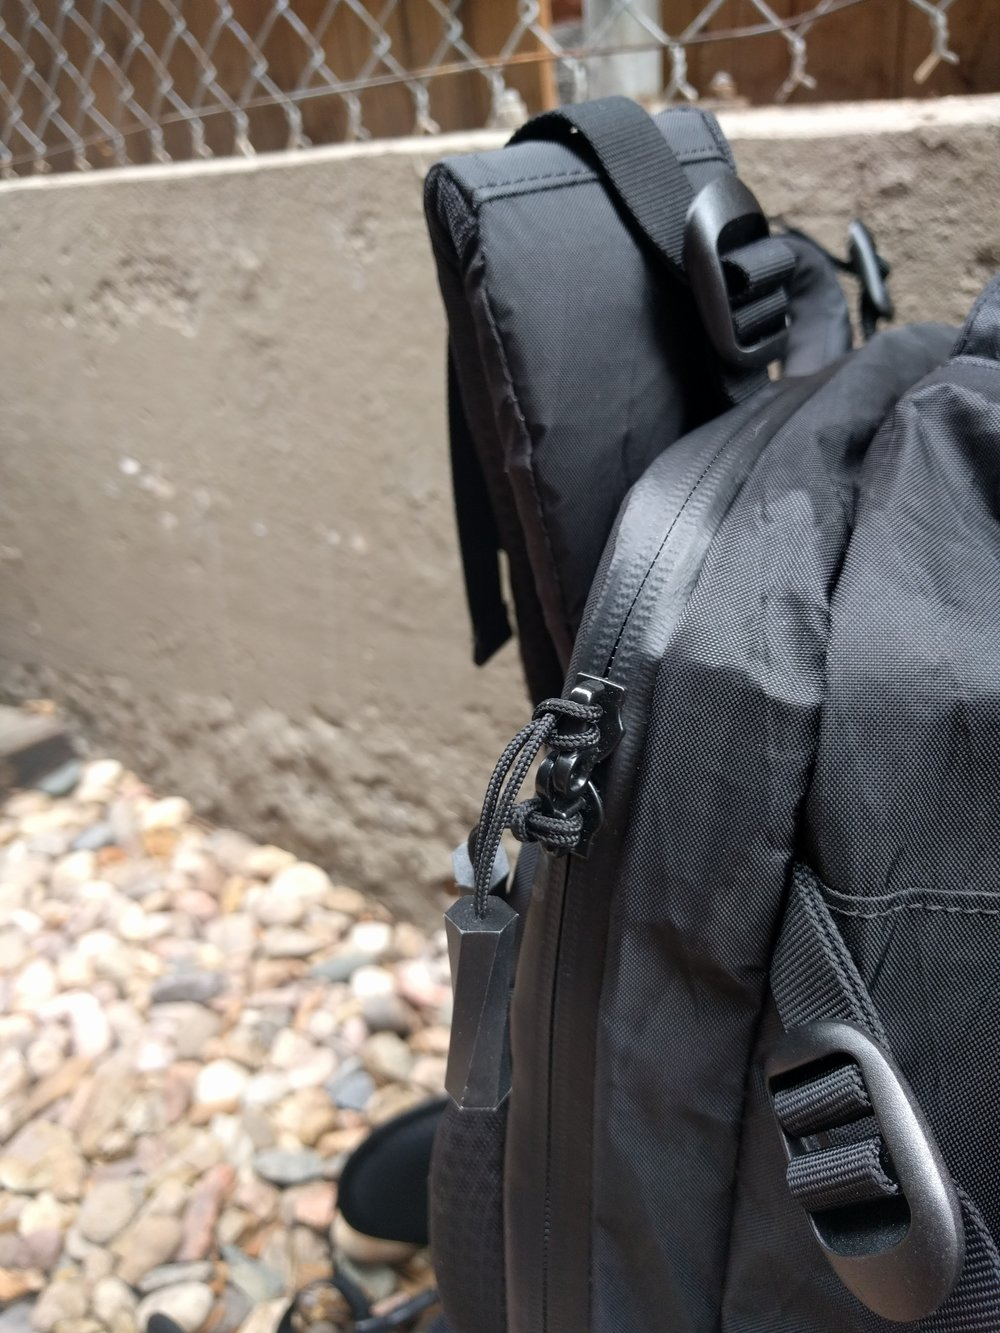 The Tortuga Outbreaker's zippers are water proof and look technical, but I question there long term durability being in constant use and being forced to carry the weight of the bag.